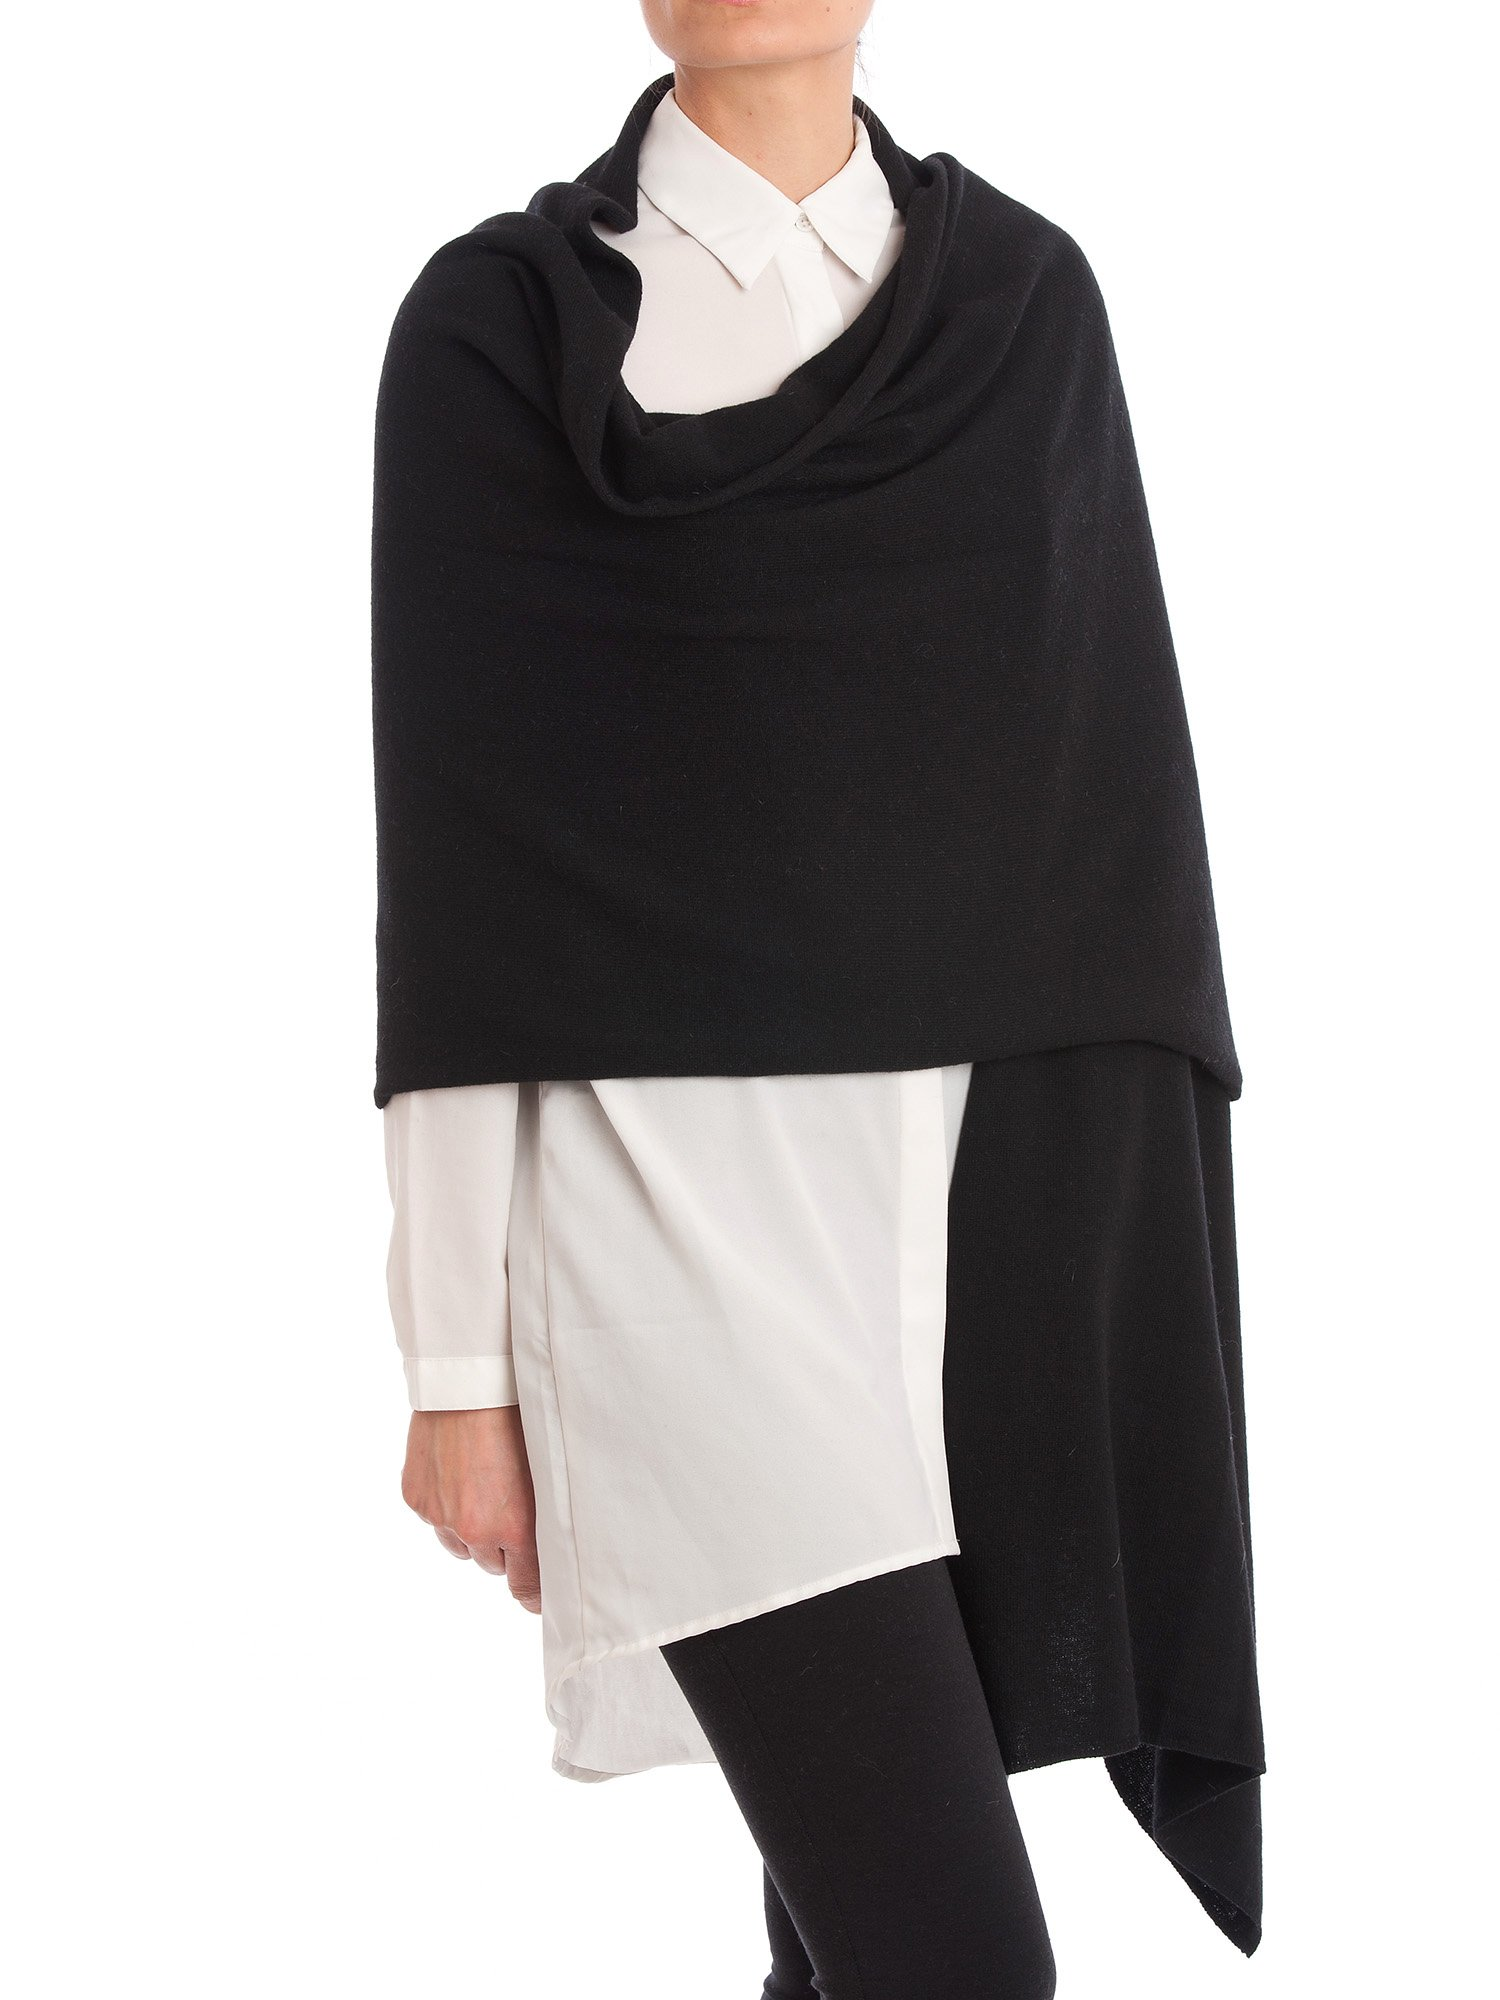 Dalle Piane Cashmere - Stole cashmere blend - Made in Italy, Color: Black, One Size